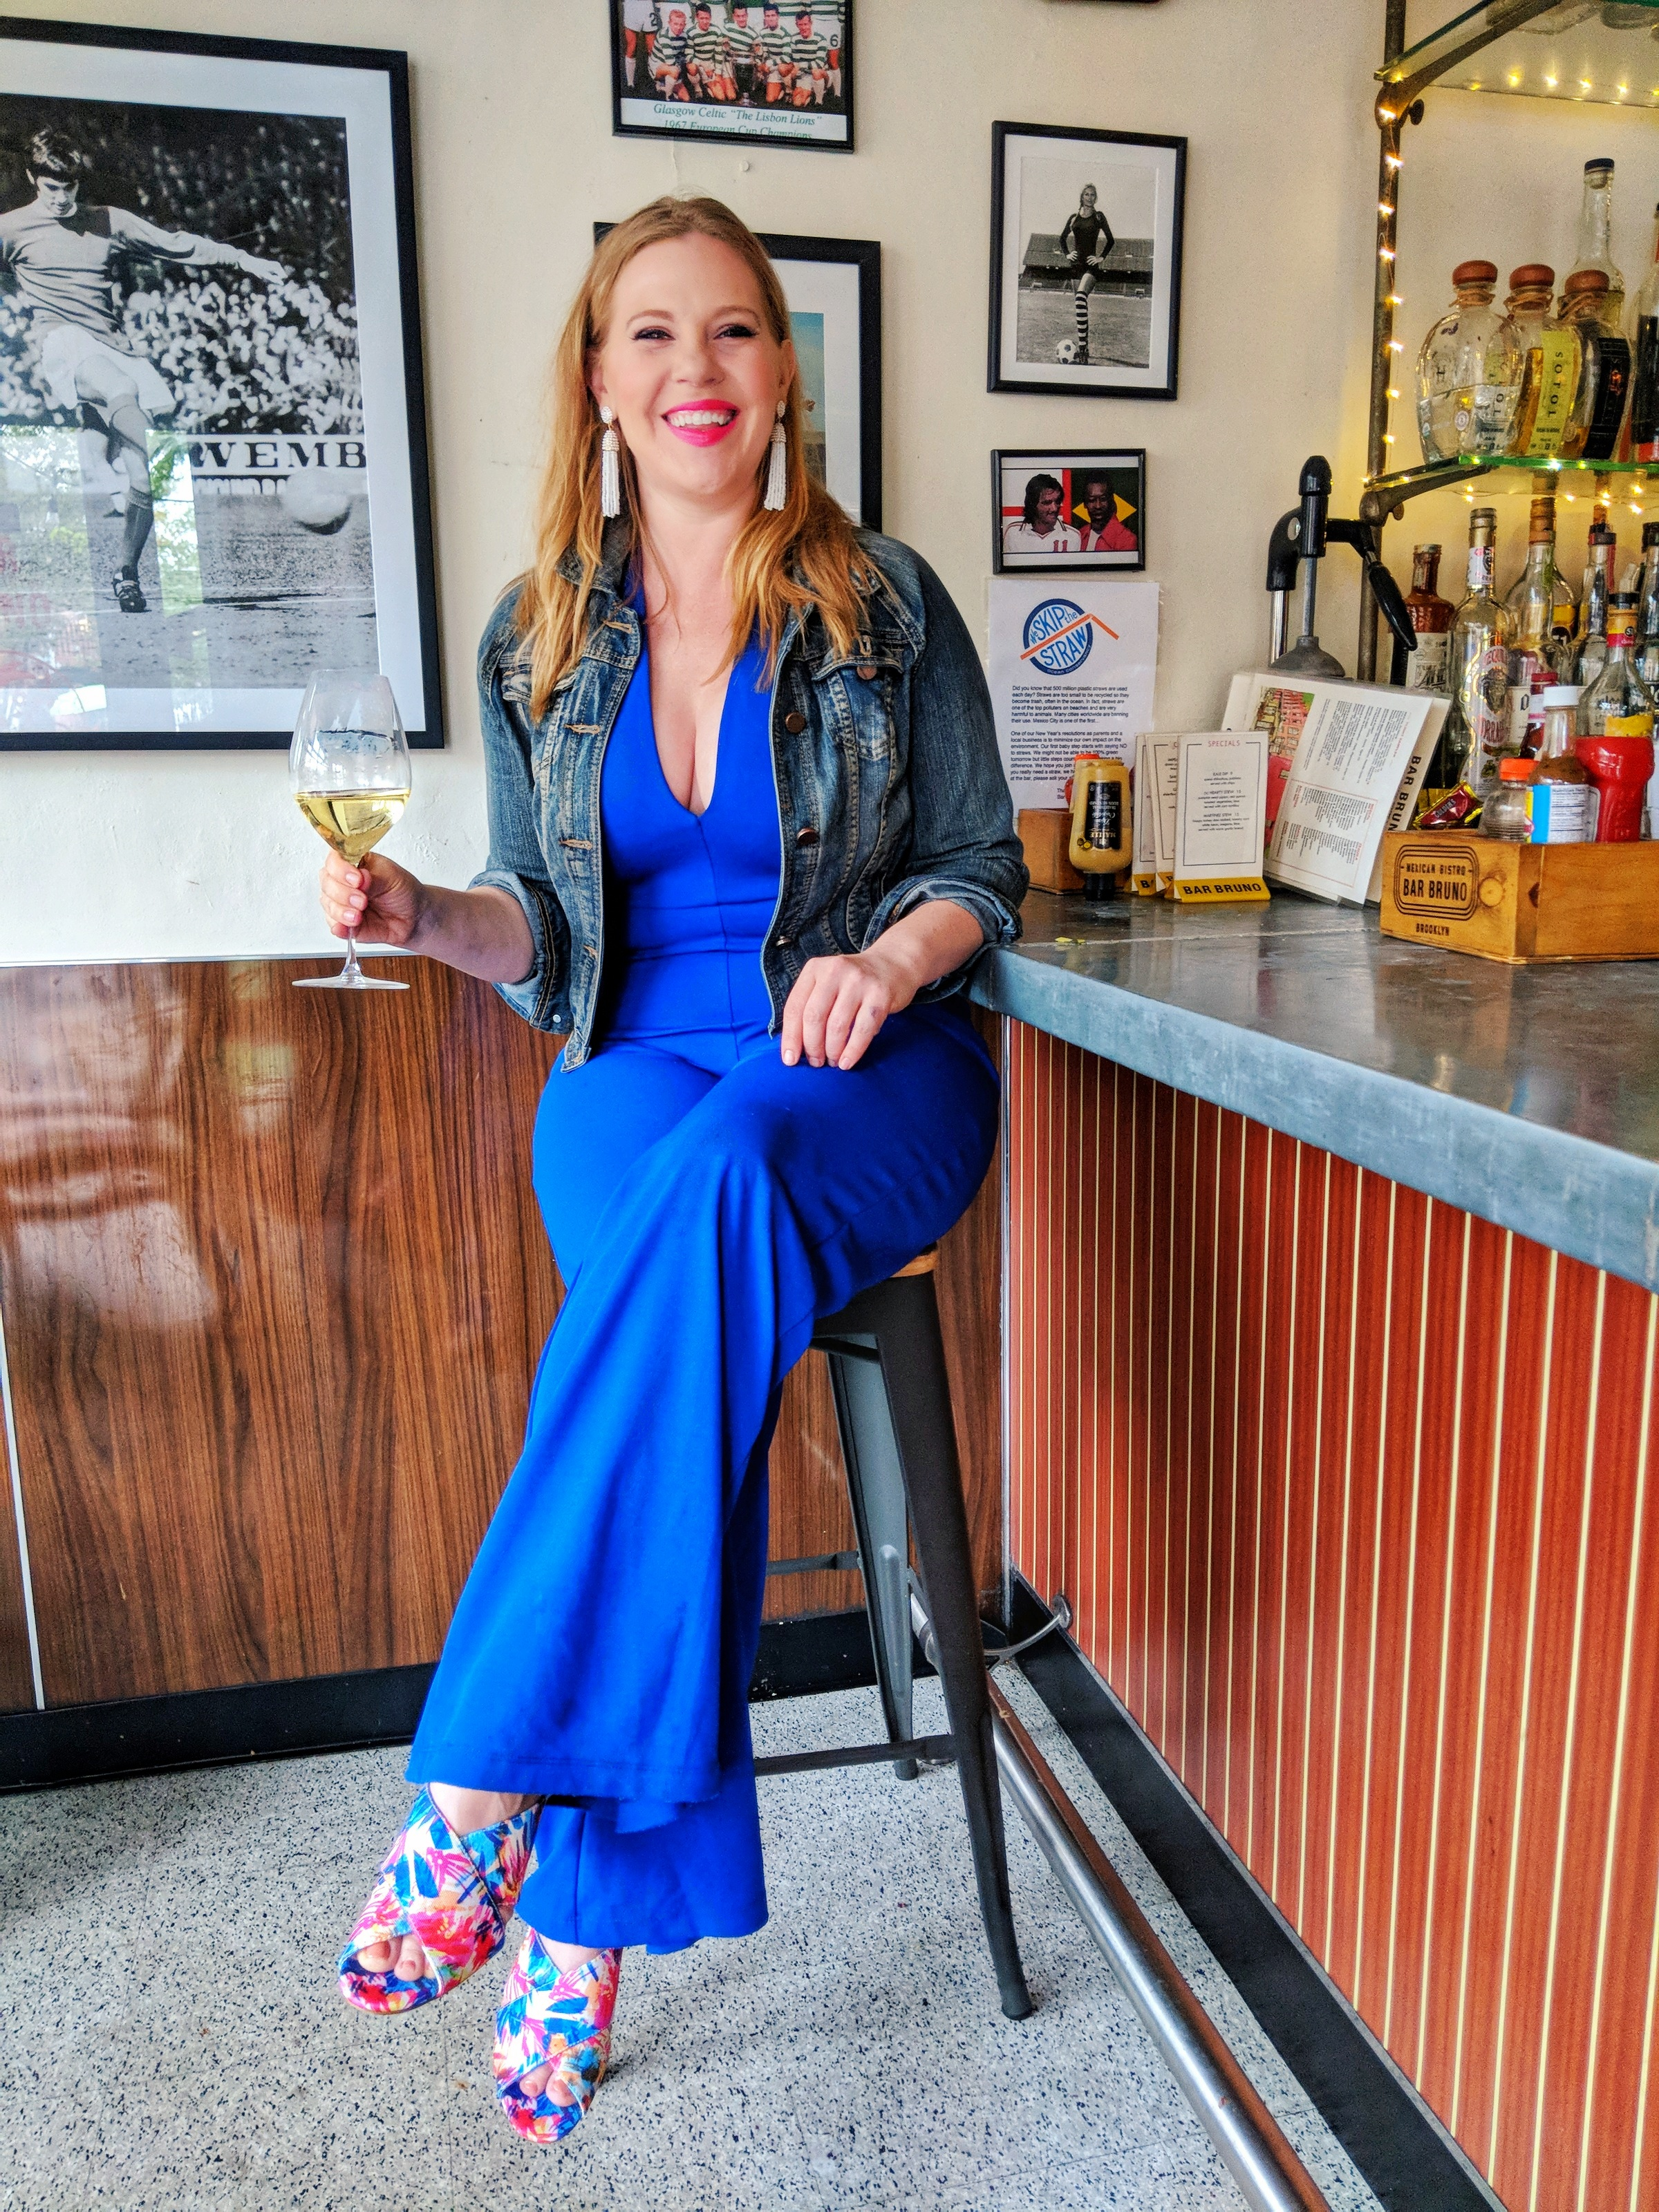 You're in… Cheers! - Get ready to sip on some seriously fun wine tips…See you in your inbox soon!xo,Sarahps. if you can't wait to get started on the wine essentials everyone should know, check out some of our articles here!